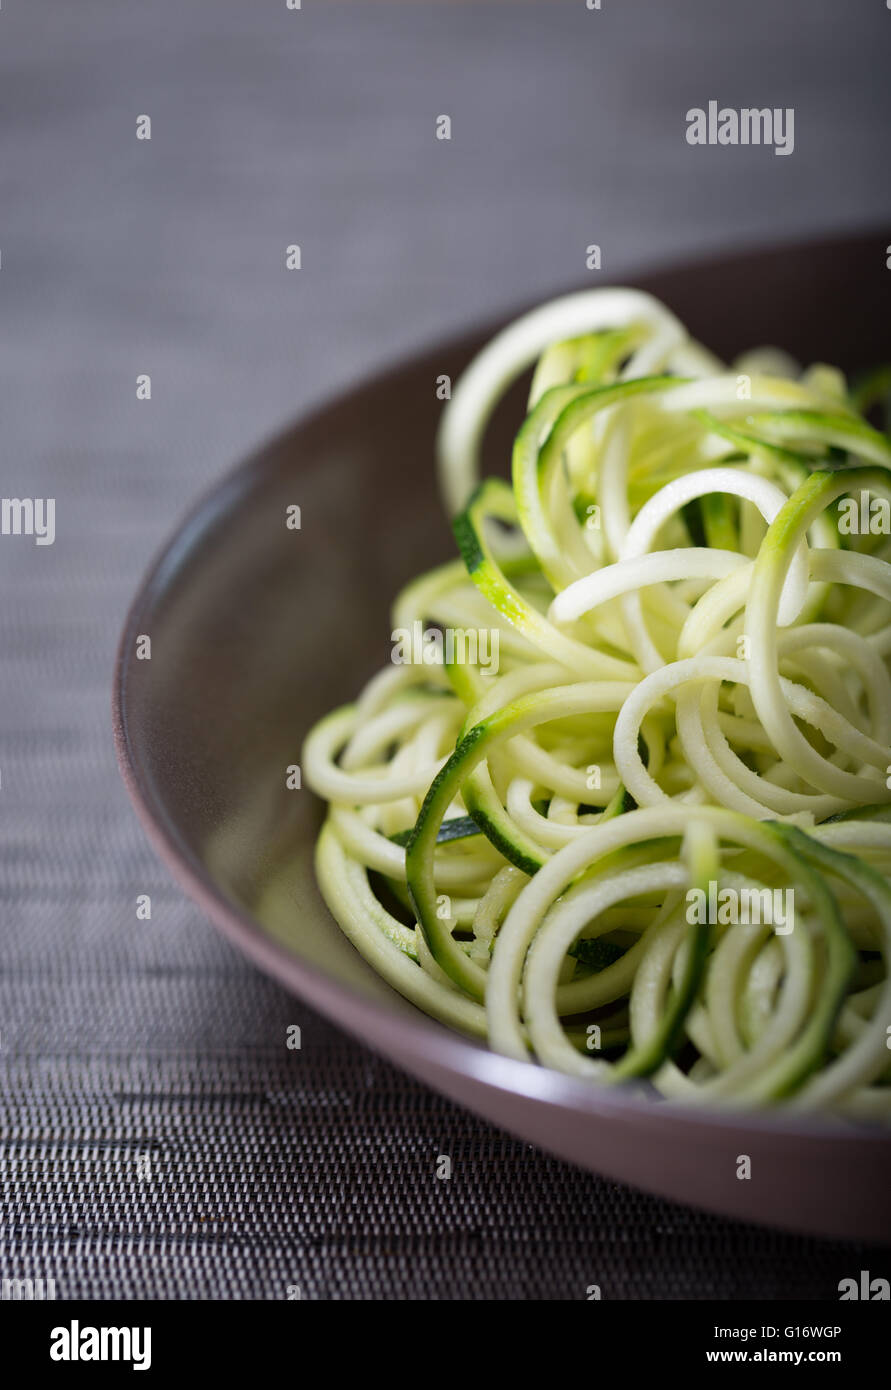 A bowl of courgette (Zucchini) noodles (spaghetti) made using a spiralizer - Stock Image